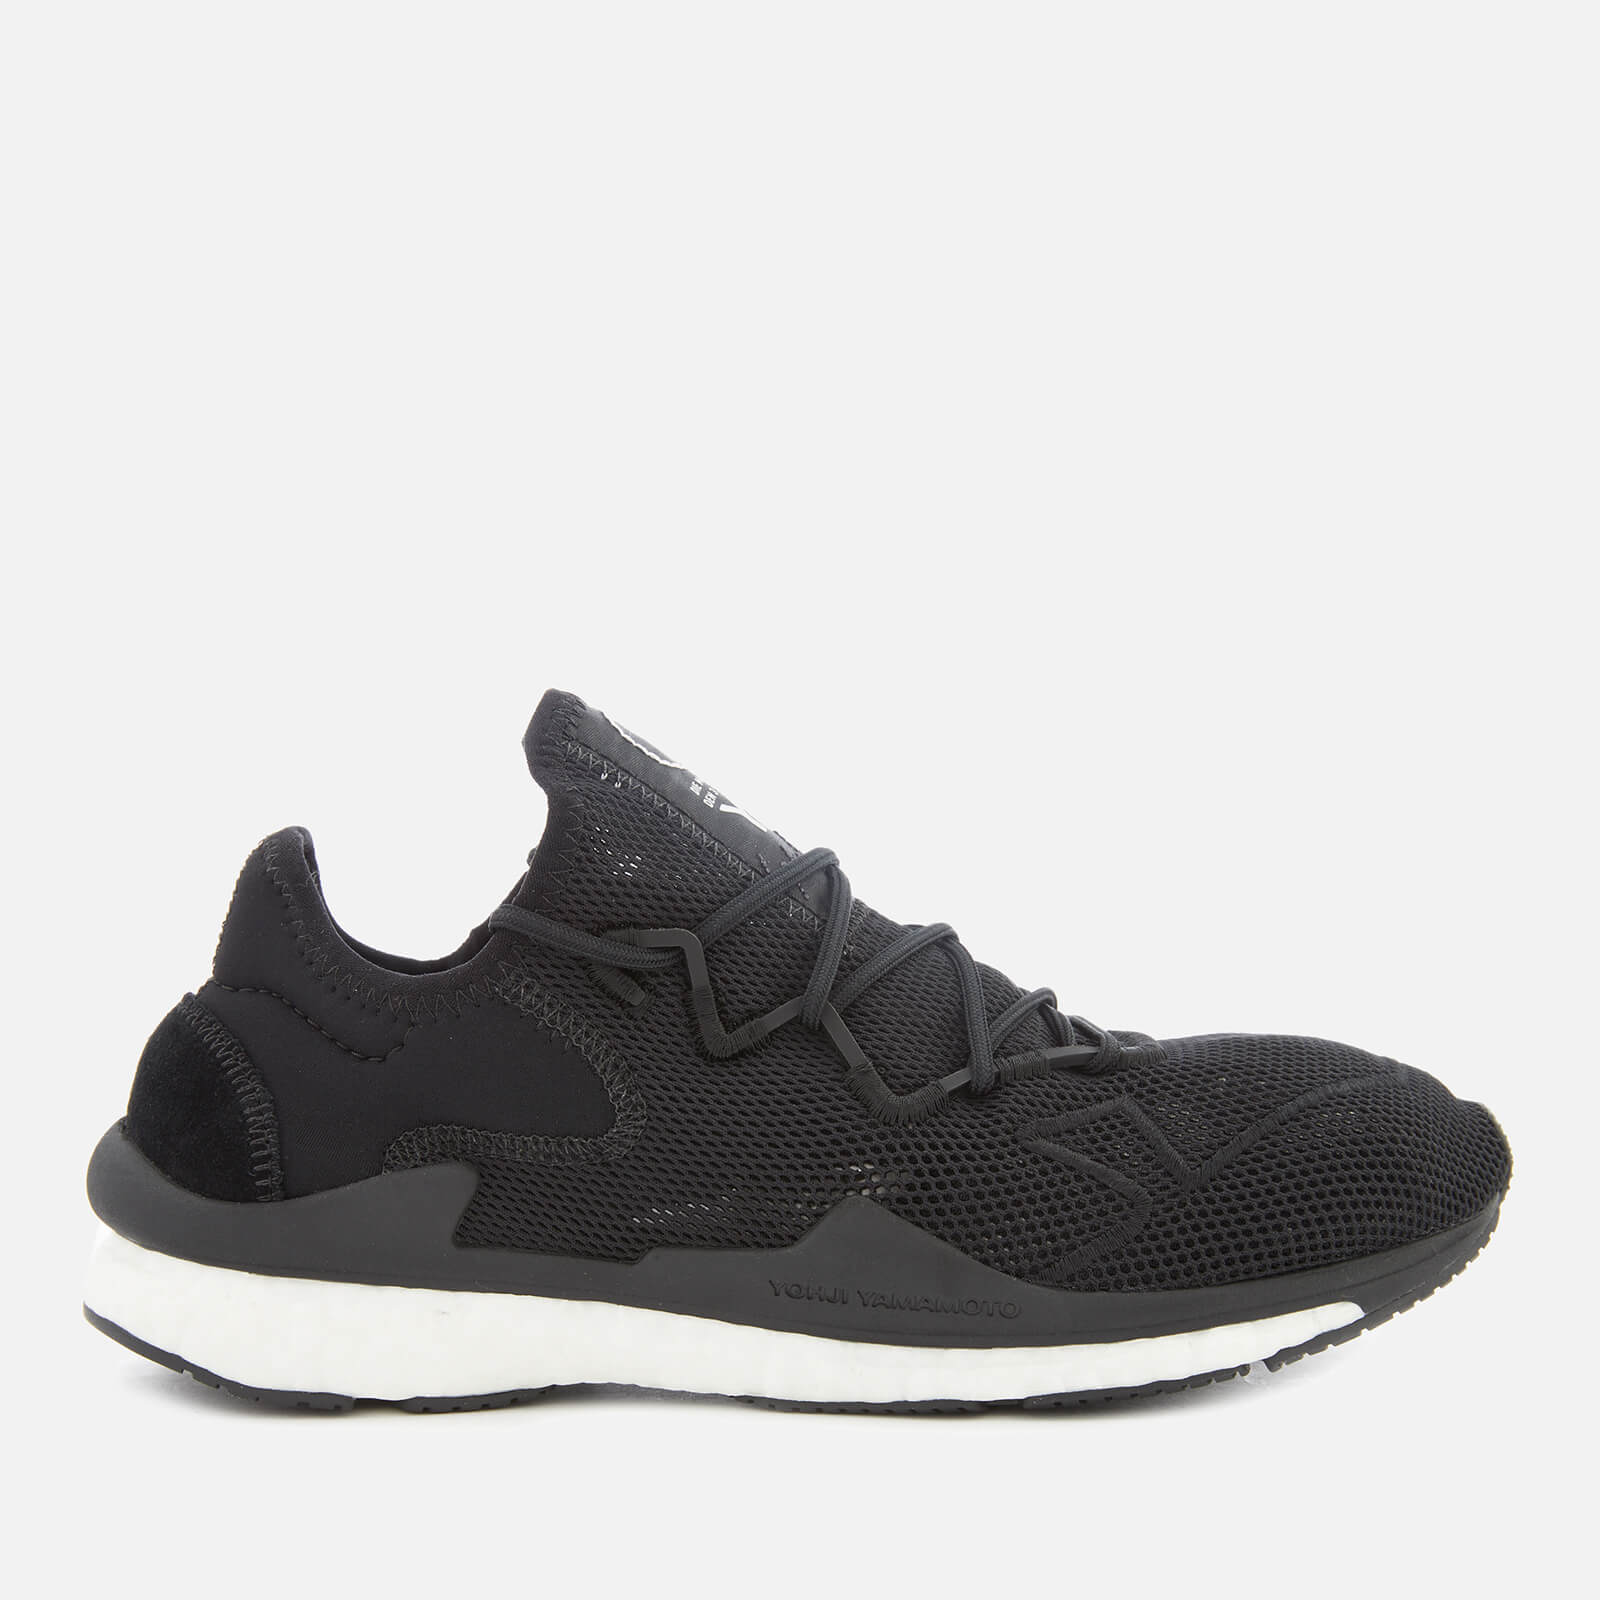 73ad2947c Y-3 Men s Adizero Runner Trainers - Black - Y3 - Free UK Delivery over £50